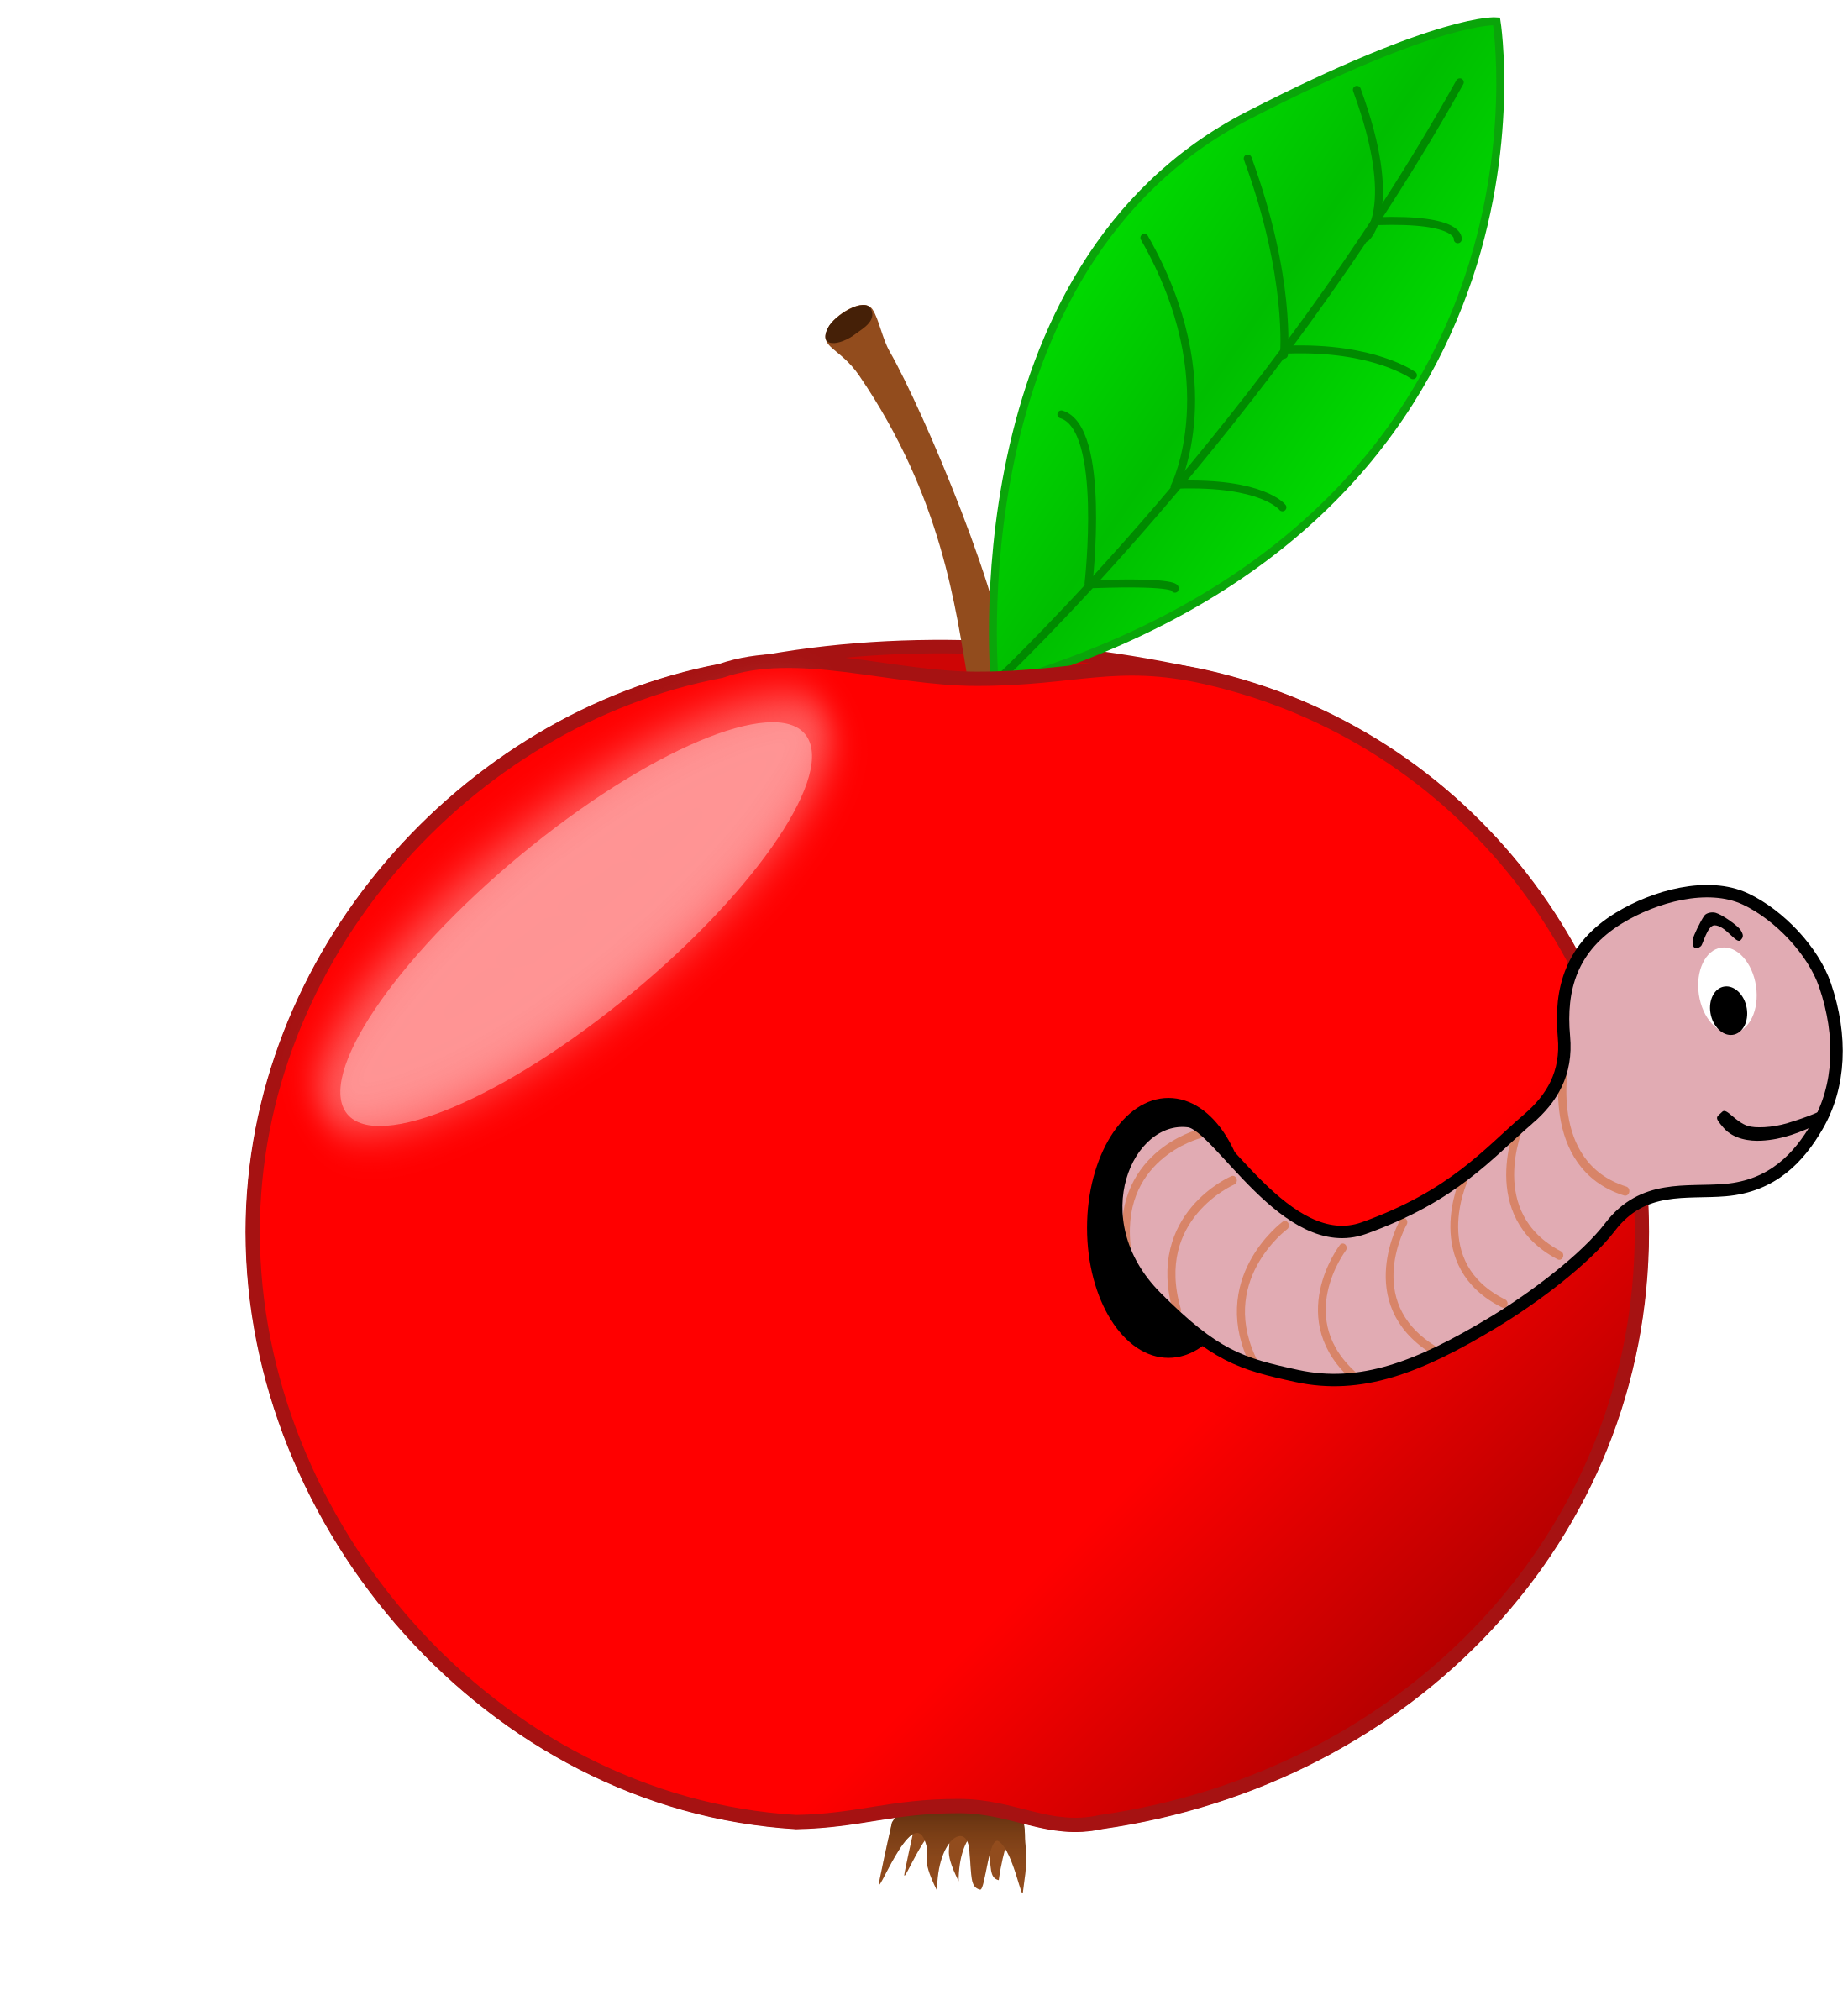 Red Apple with a Worm by vanyasmart